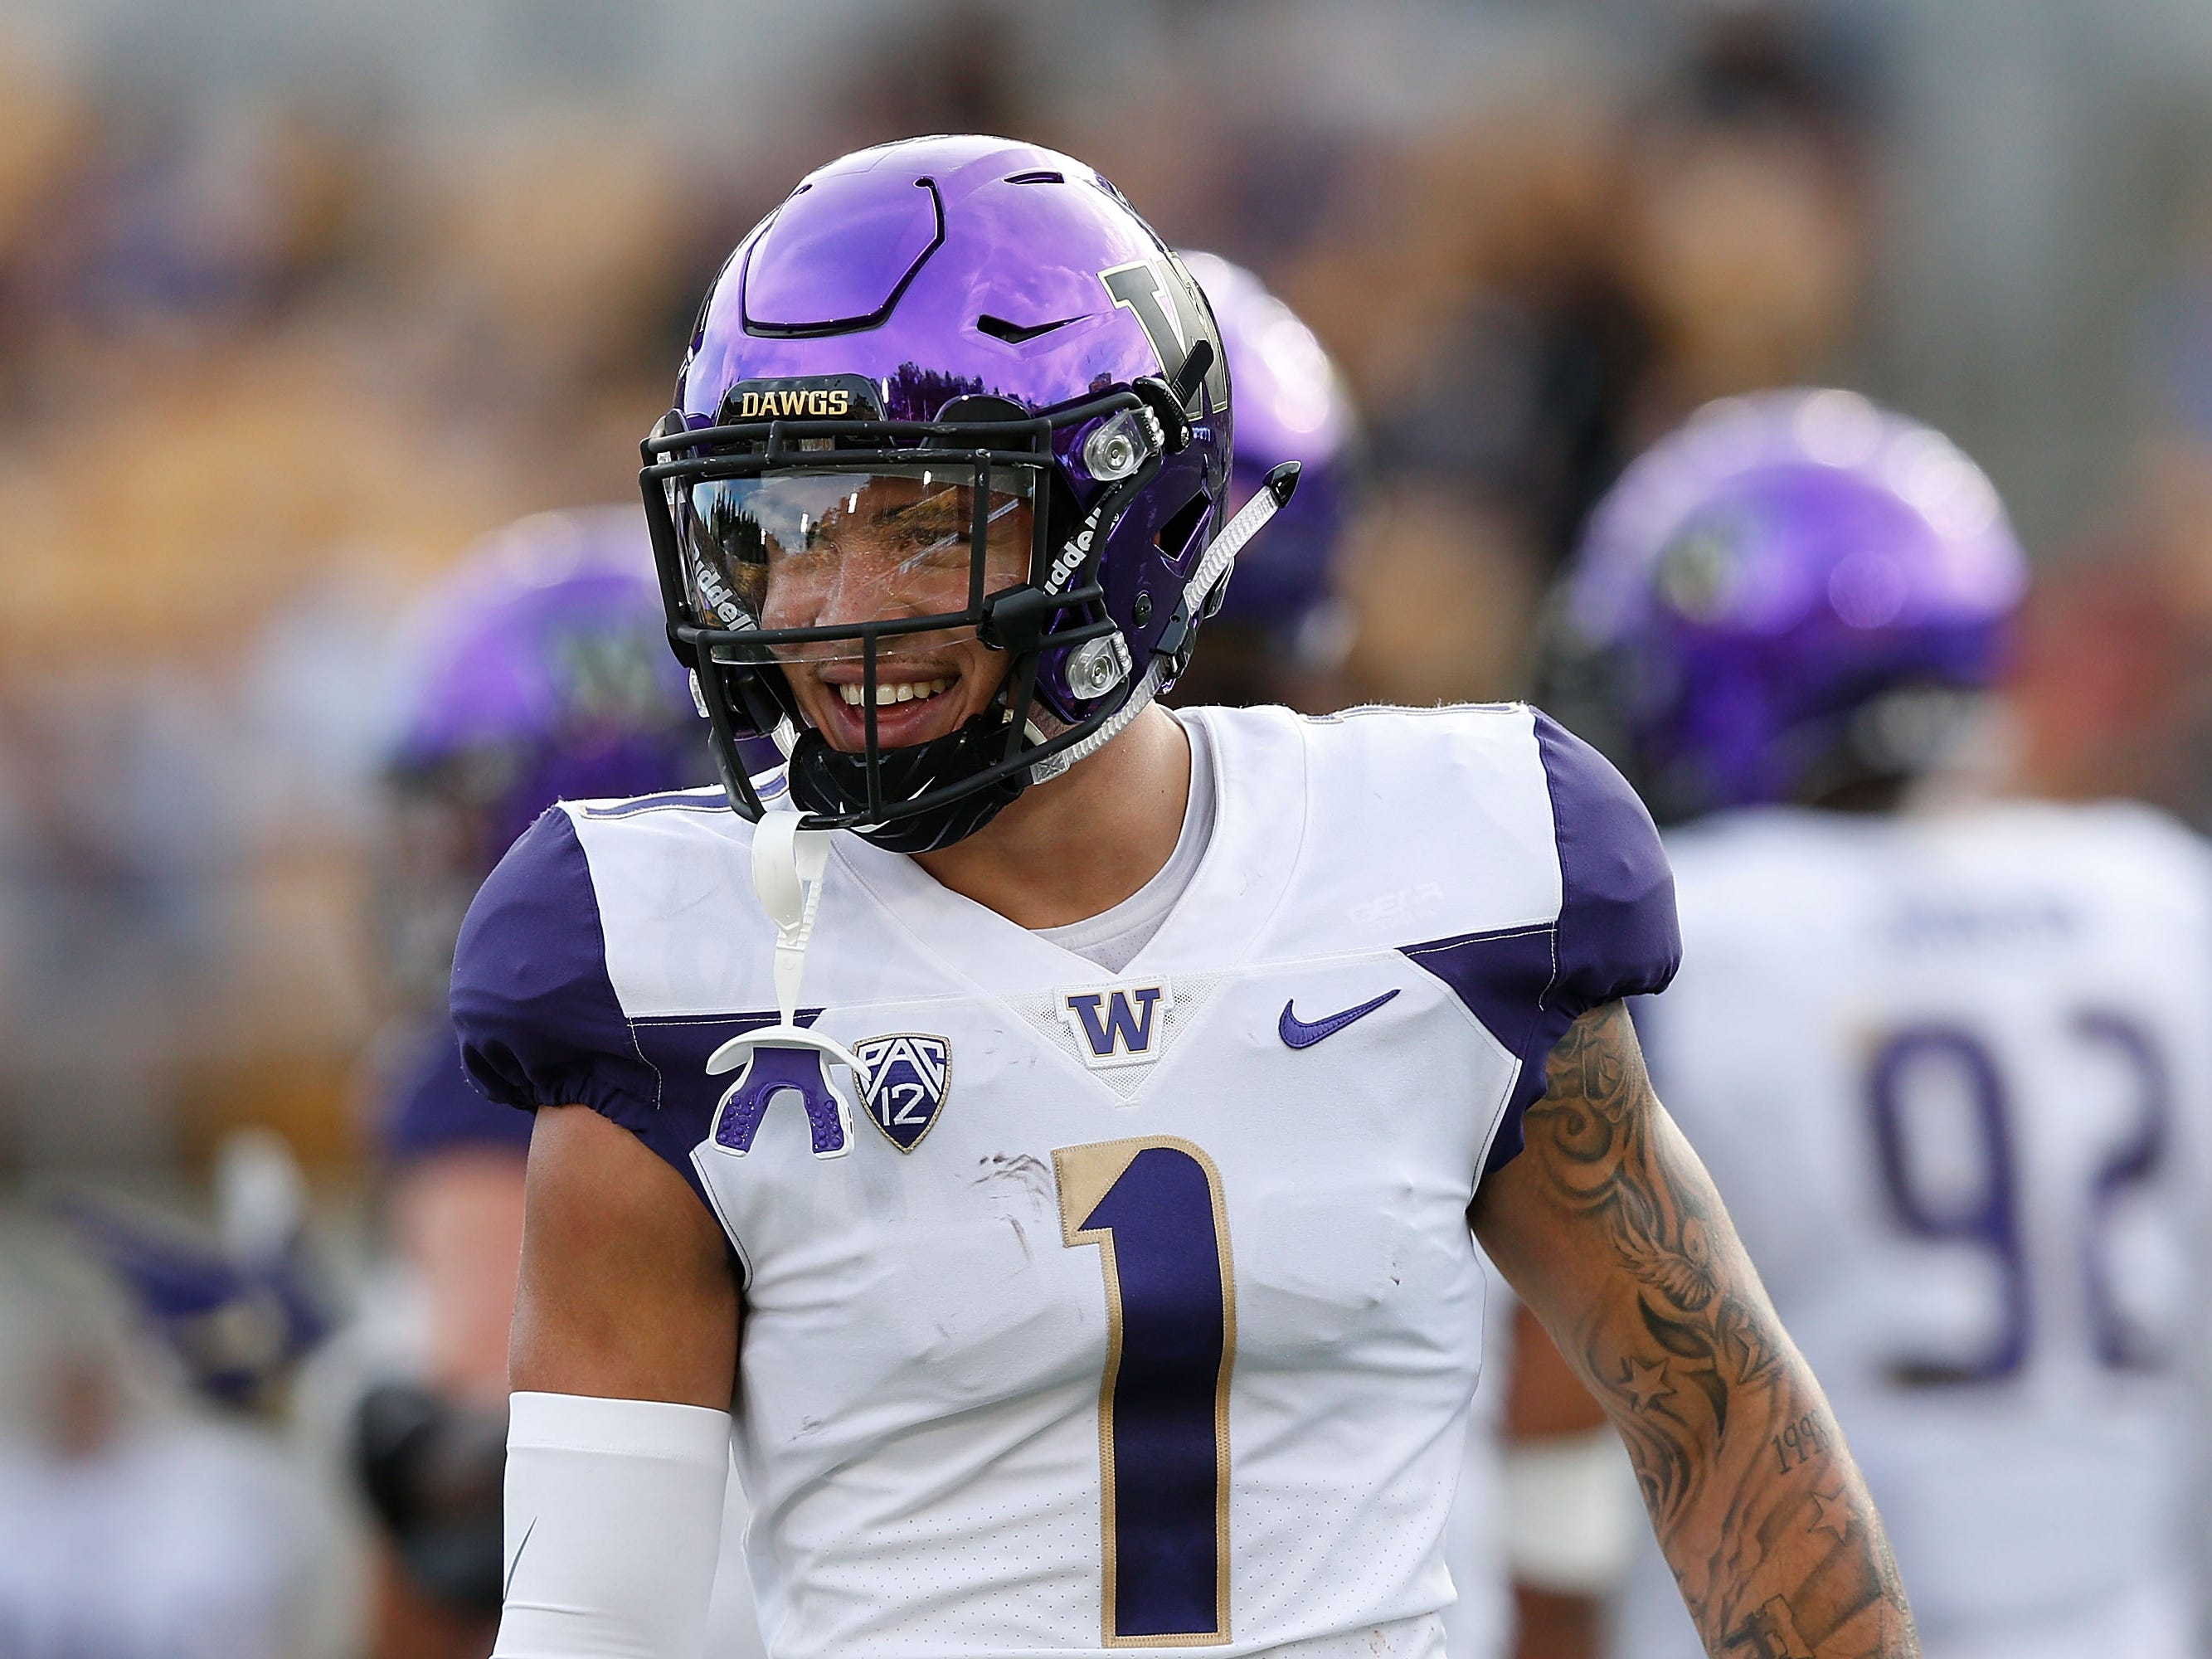 20. Pittsburgh Steelers — Byron Murphy, CB, Washington: Joe Haden is entering the final year of his contract and Coty Sensabaugh, on the opposite side, merits an upgrade for a team that tallied just eight interceptions last season. Murphy proved to be quite the playmaker in college and could start immediate for the Steelers.